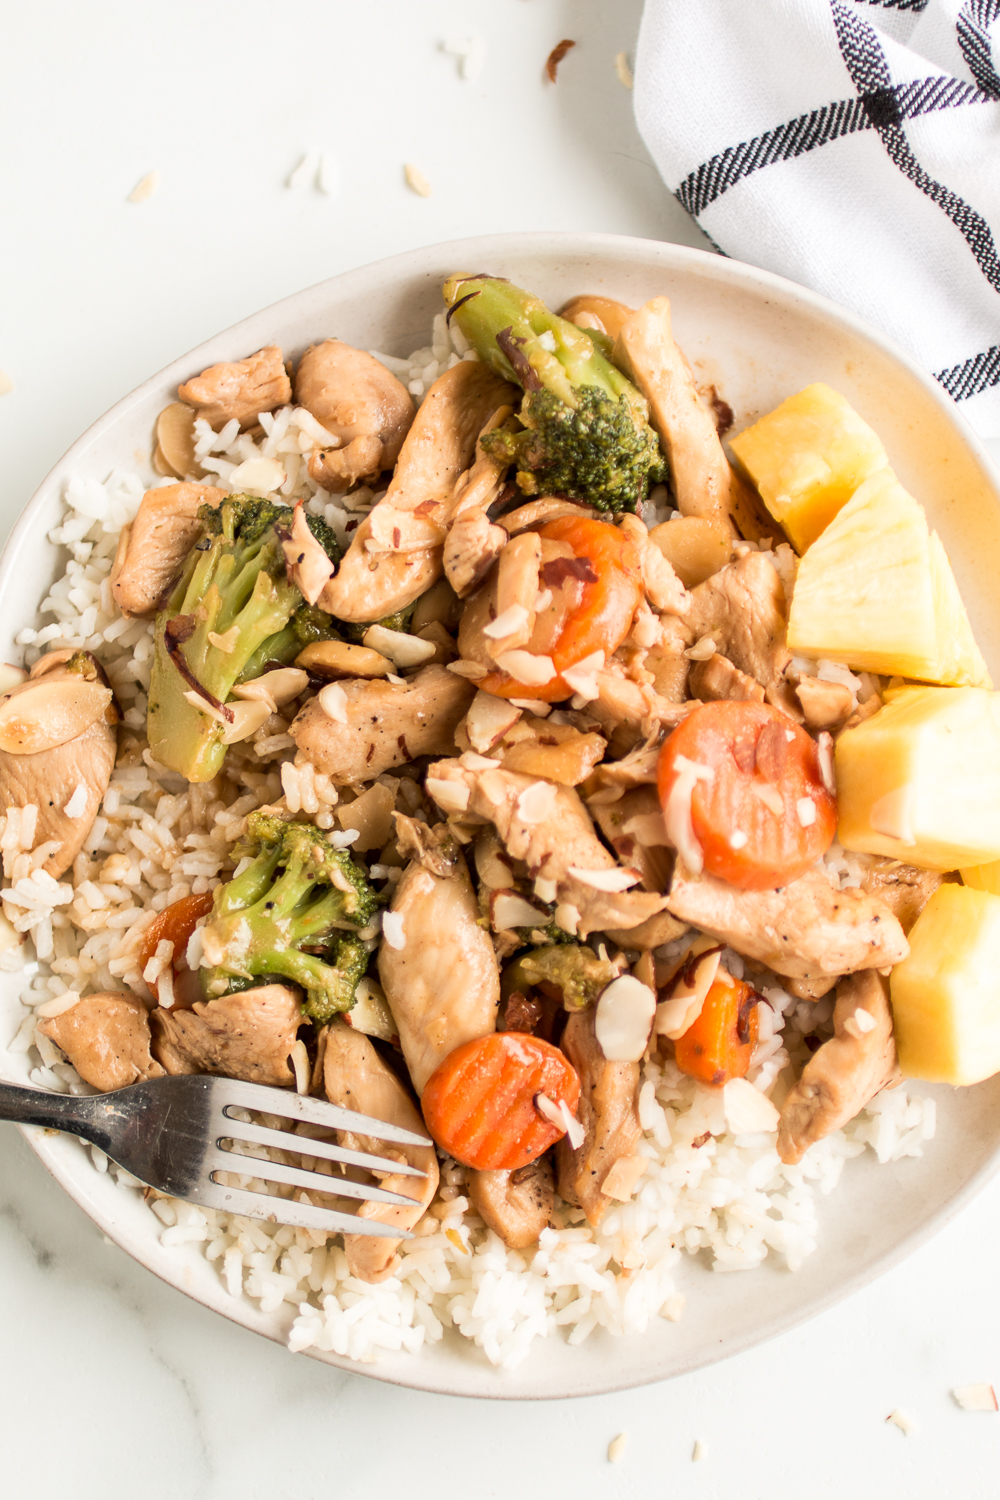 Chicken Almond Stir Fry: a delicious and quick family friendly meal filled with protein, veggies and a sweet pineapple sauce flavor!